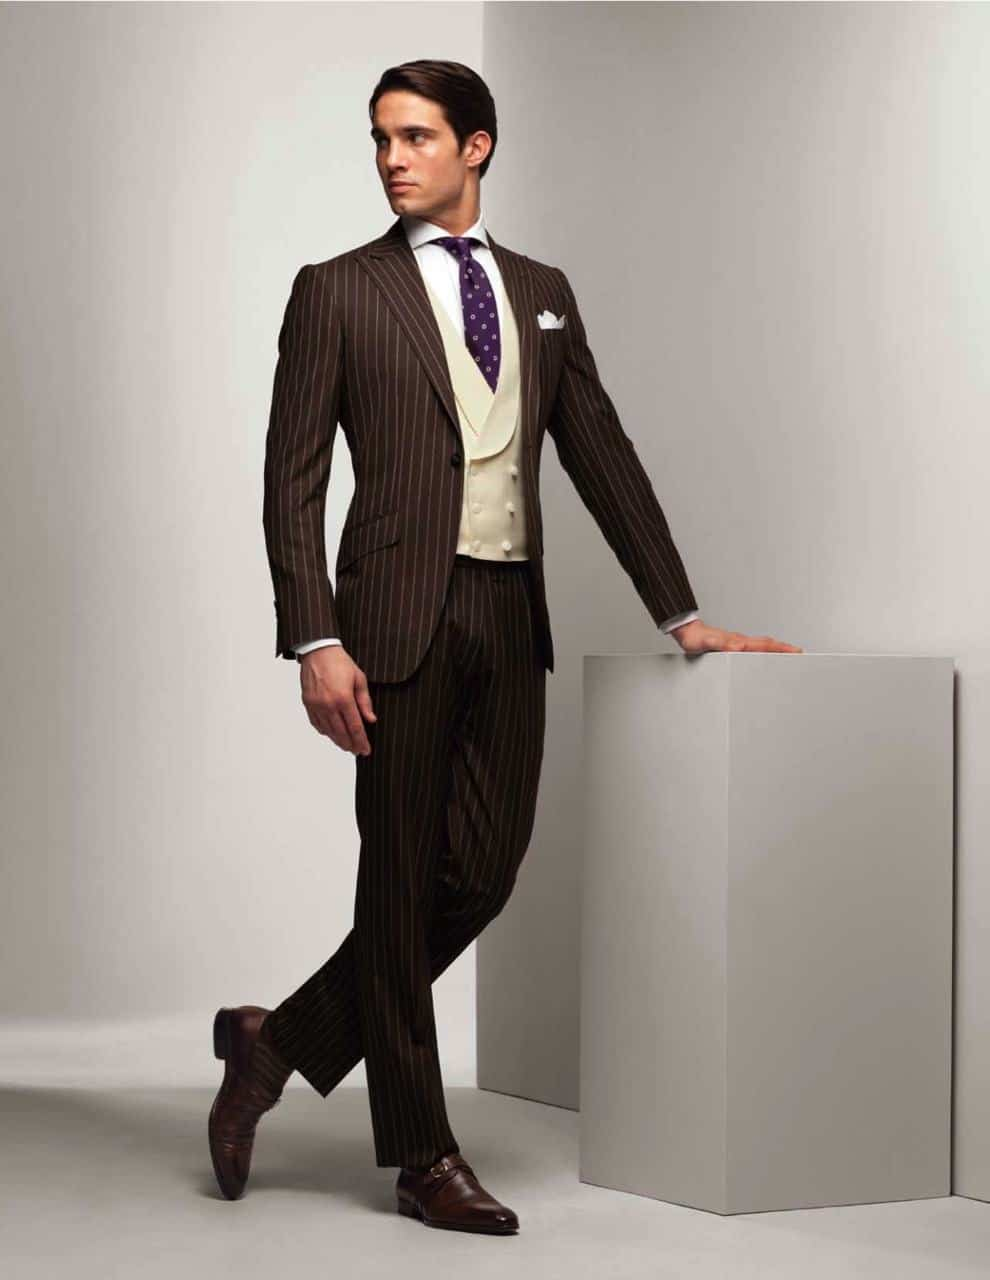 Colorful Outfits - How Much Is Too Much? — Gentleman's Gazette